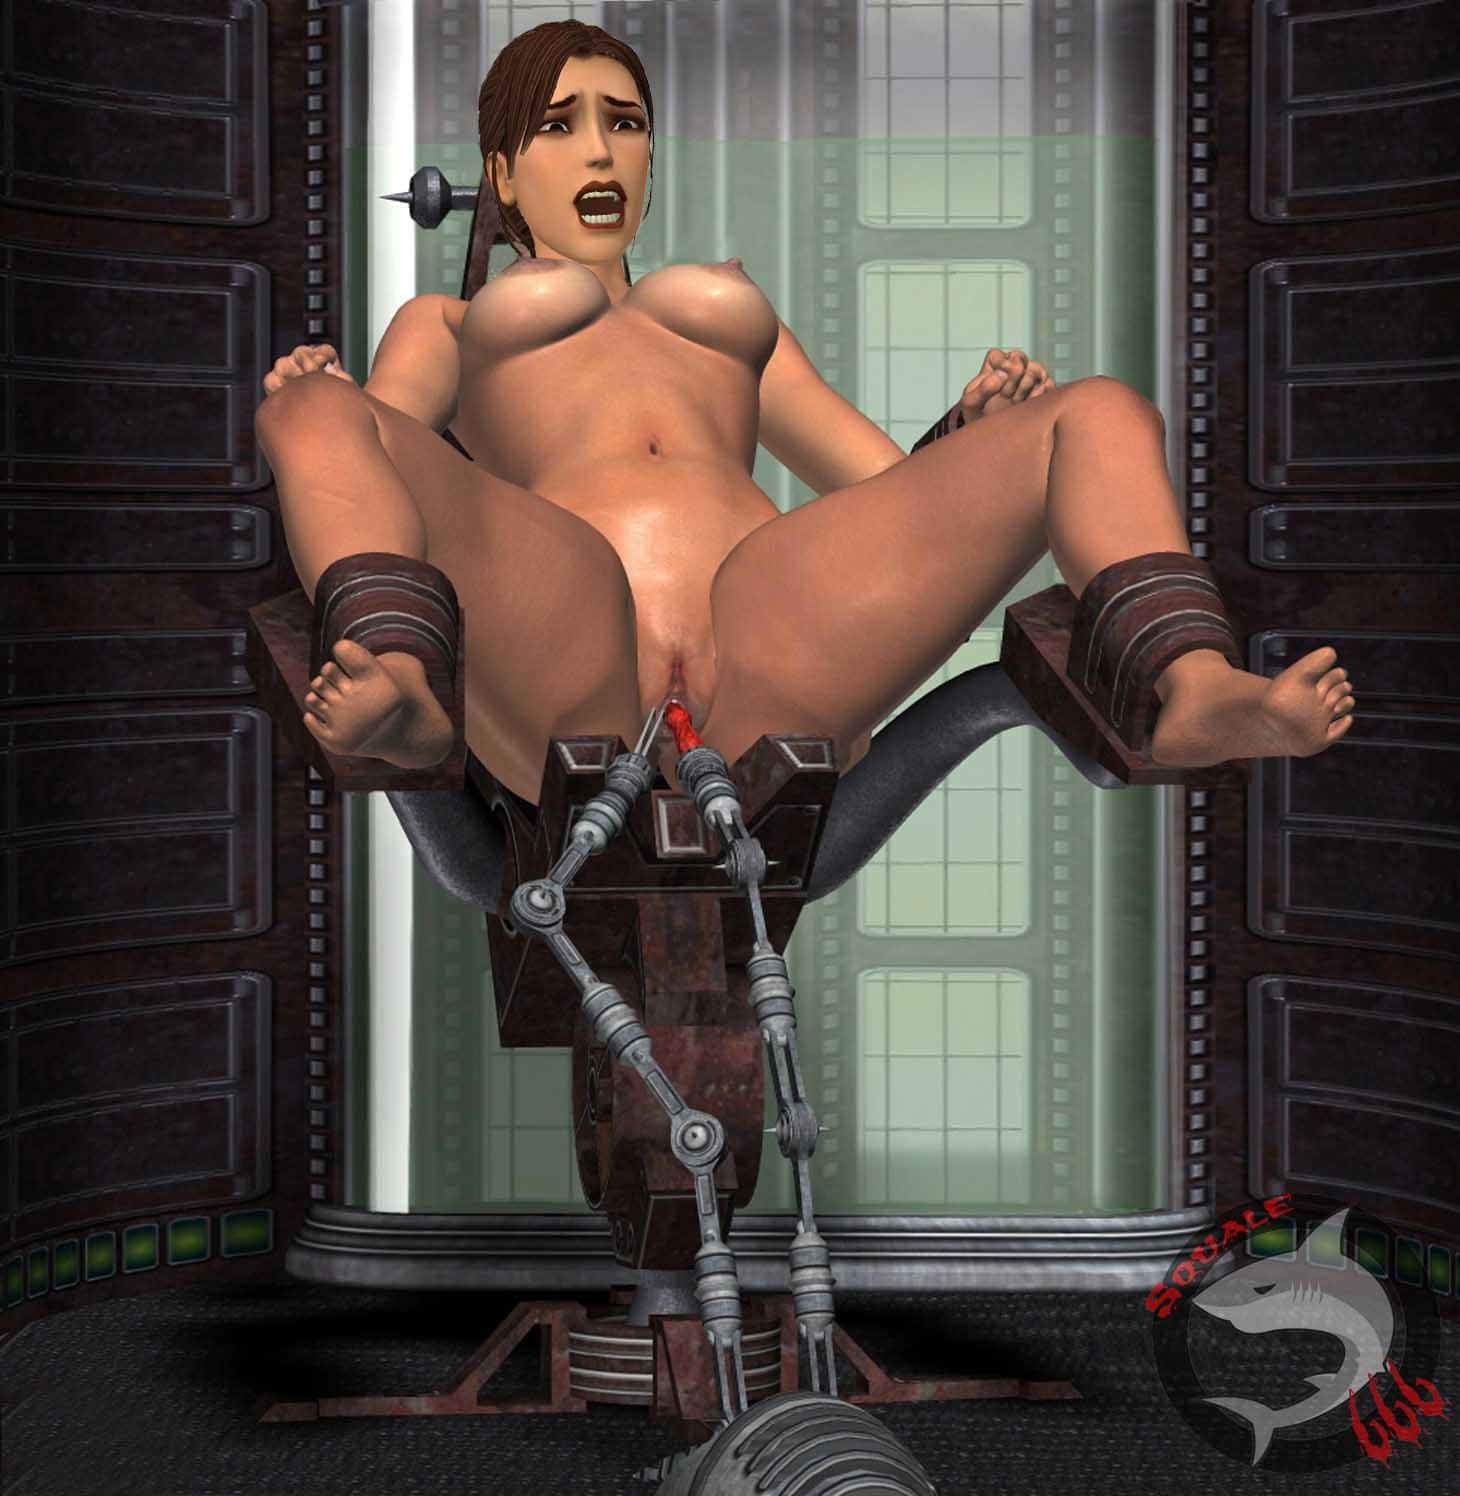 Tomb raider sex 3d 3gp erotica video